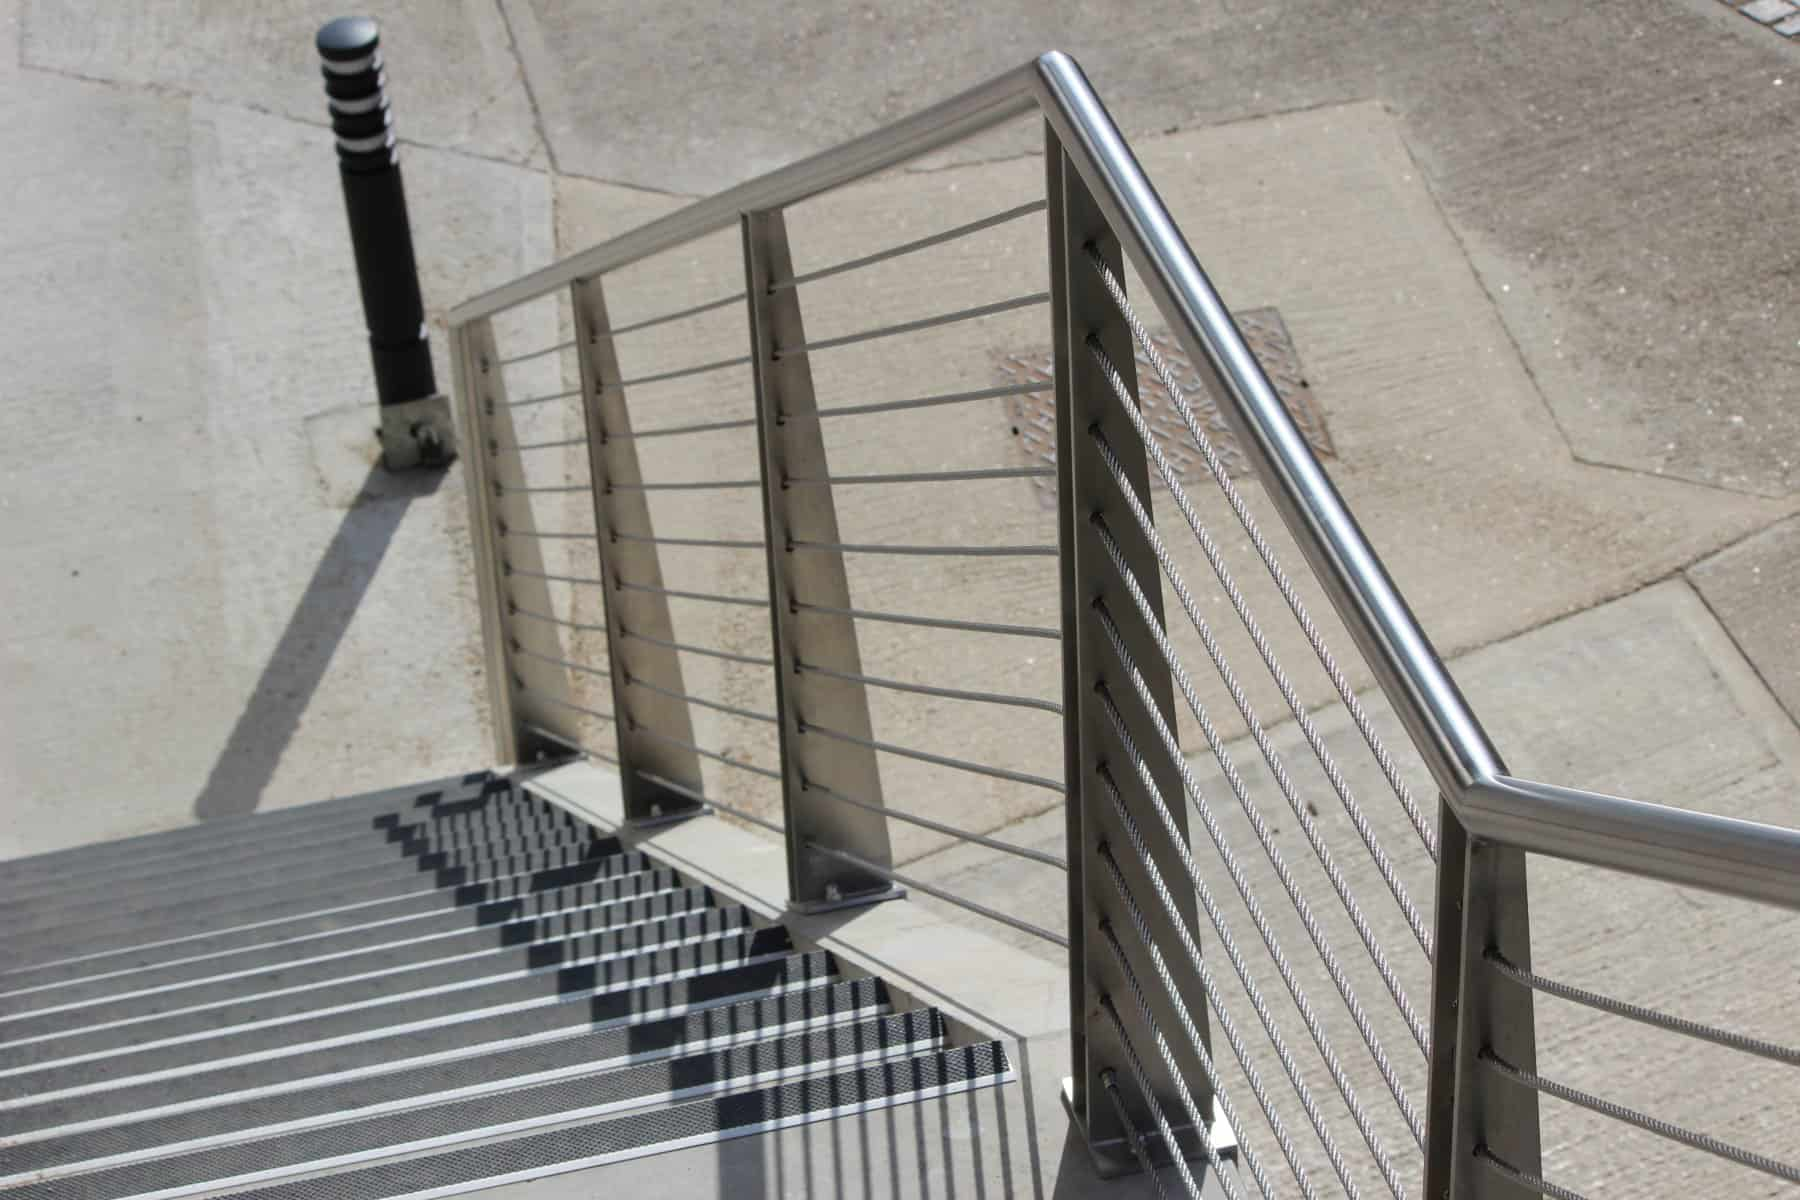 Stainless Steel Steps & Handrails Wrightfield Conveyor Systems